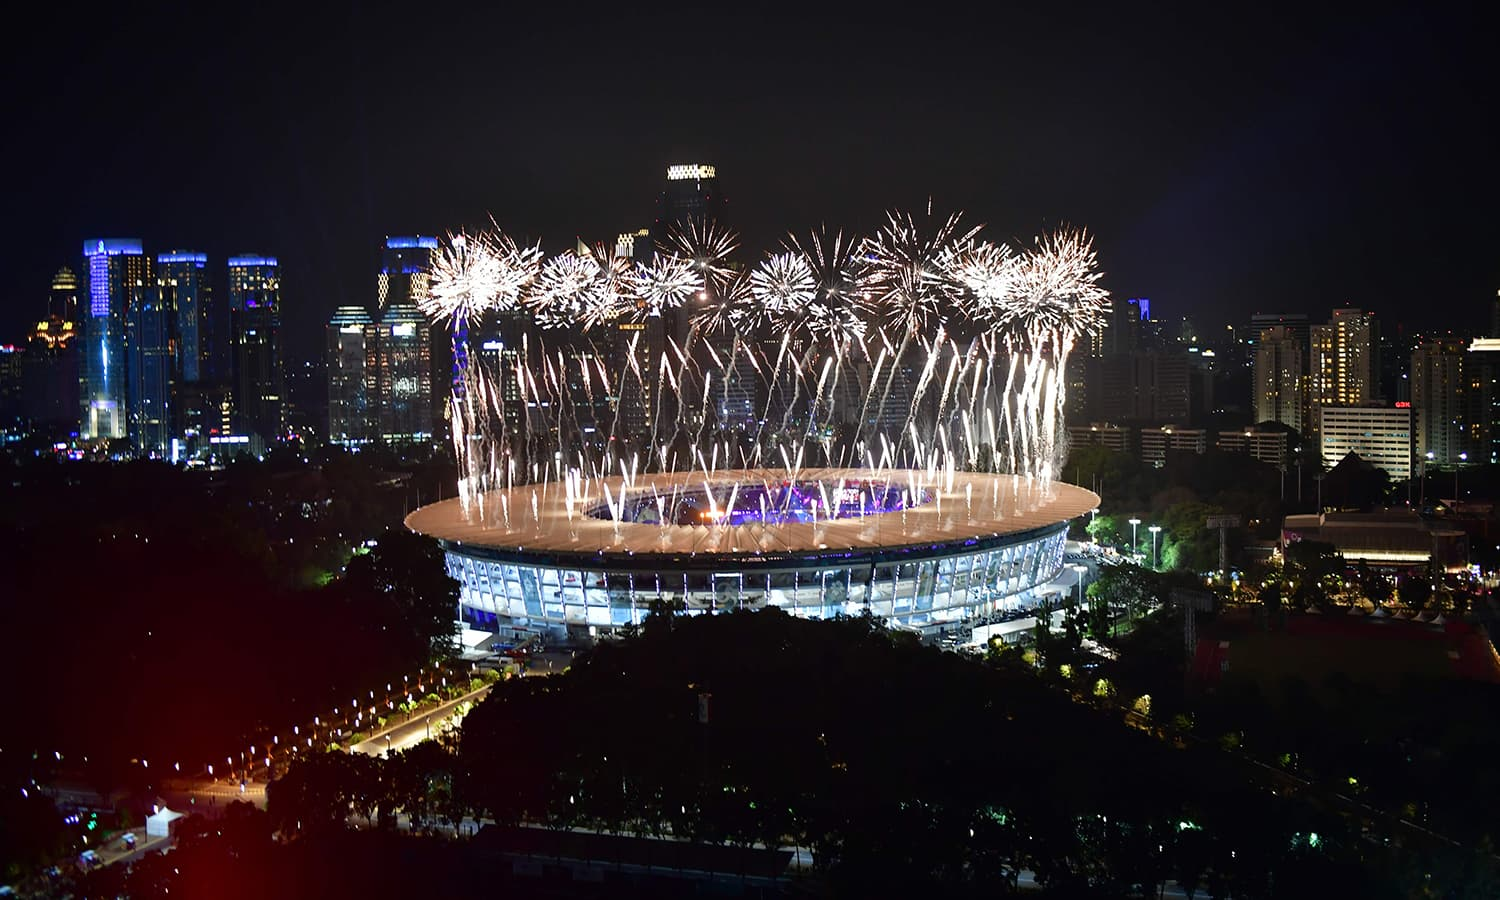 Fireworks explode over the Gelora Bung Karno main stadium during the opening ceremony. —AFP